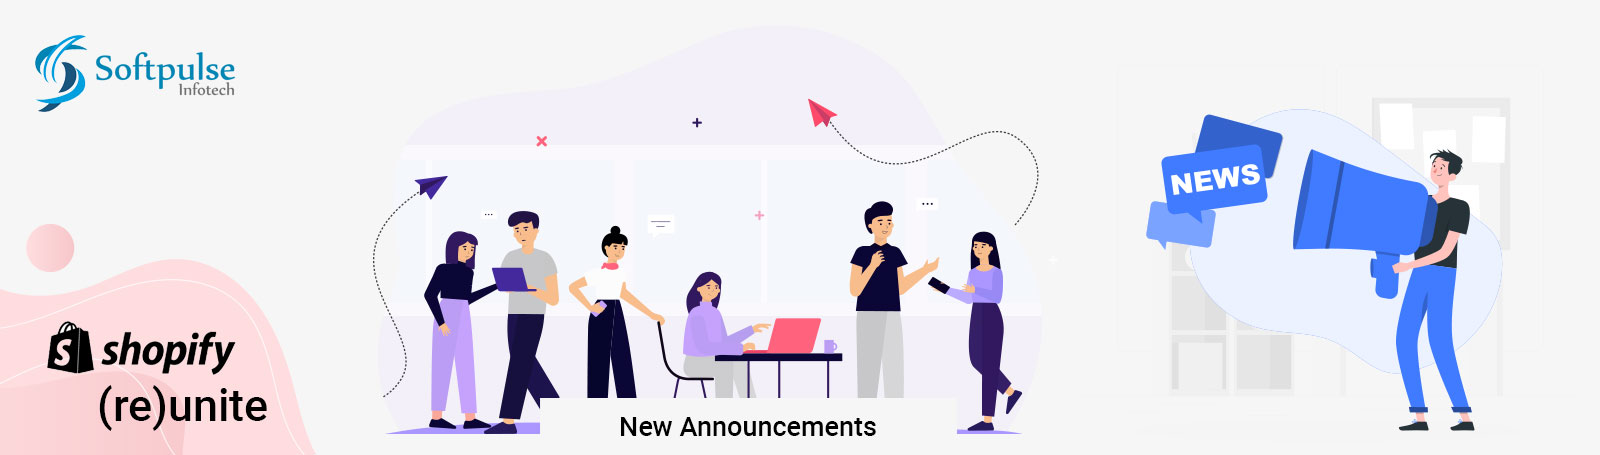 Shopify Reunite 2020: A Quick Roundup All the New Announcements